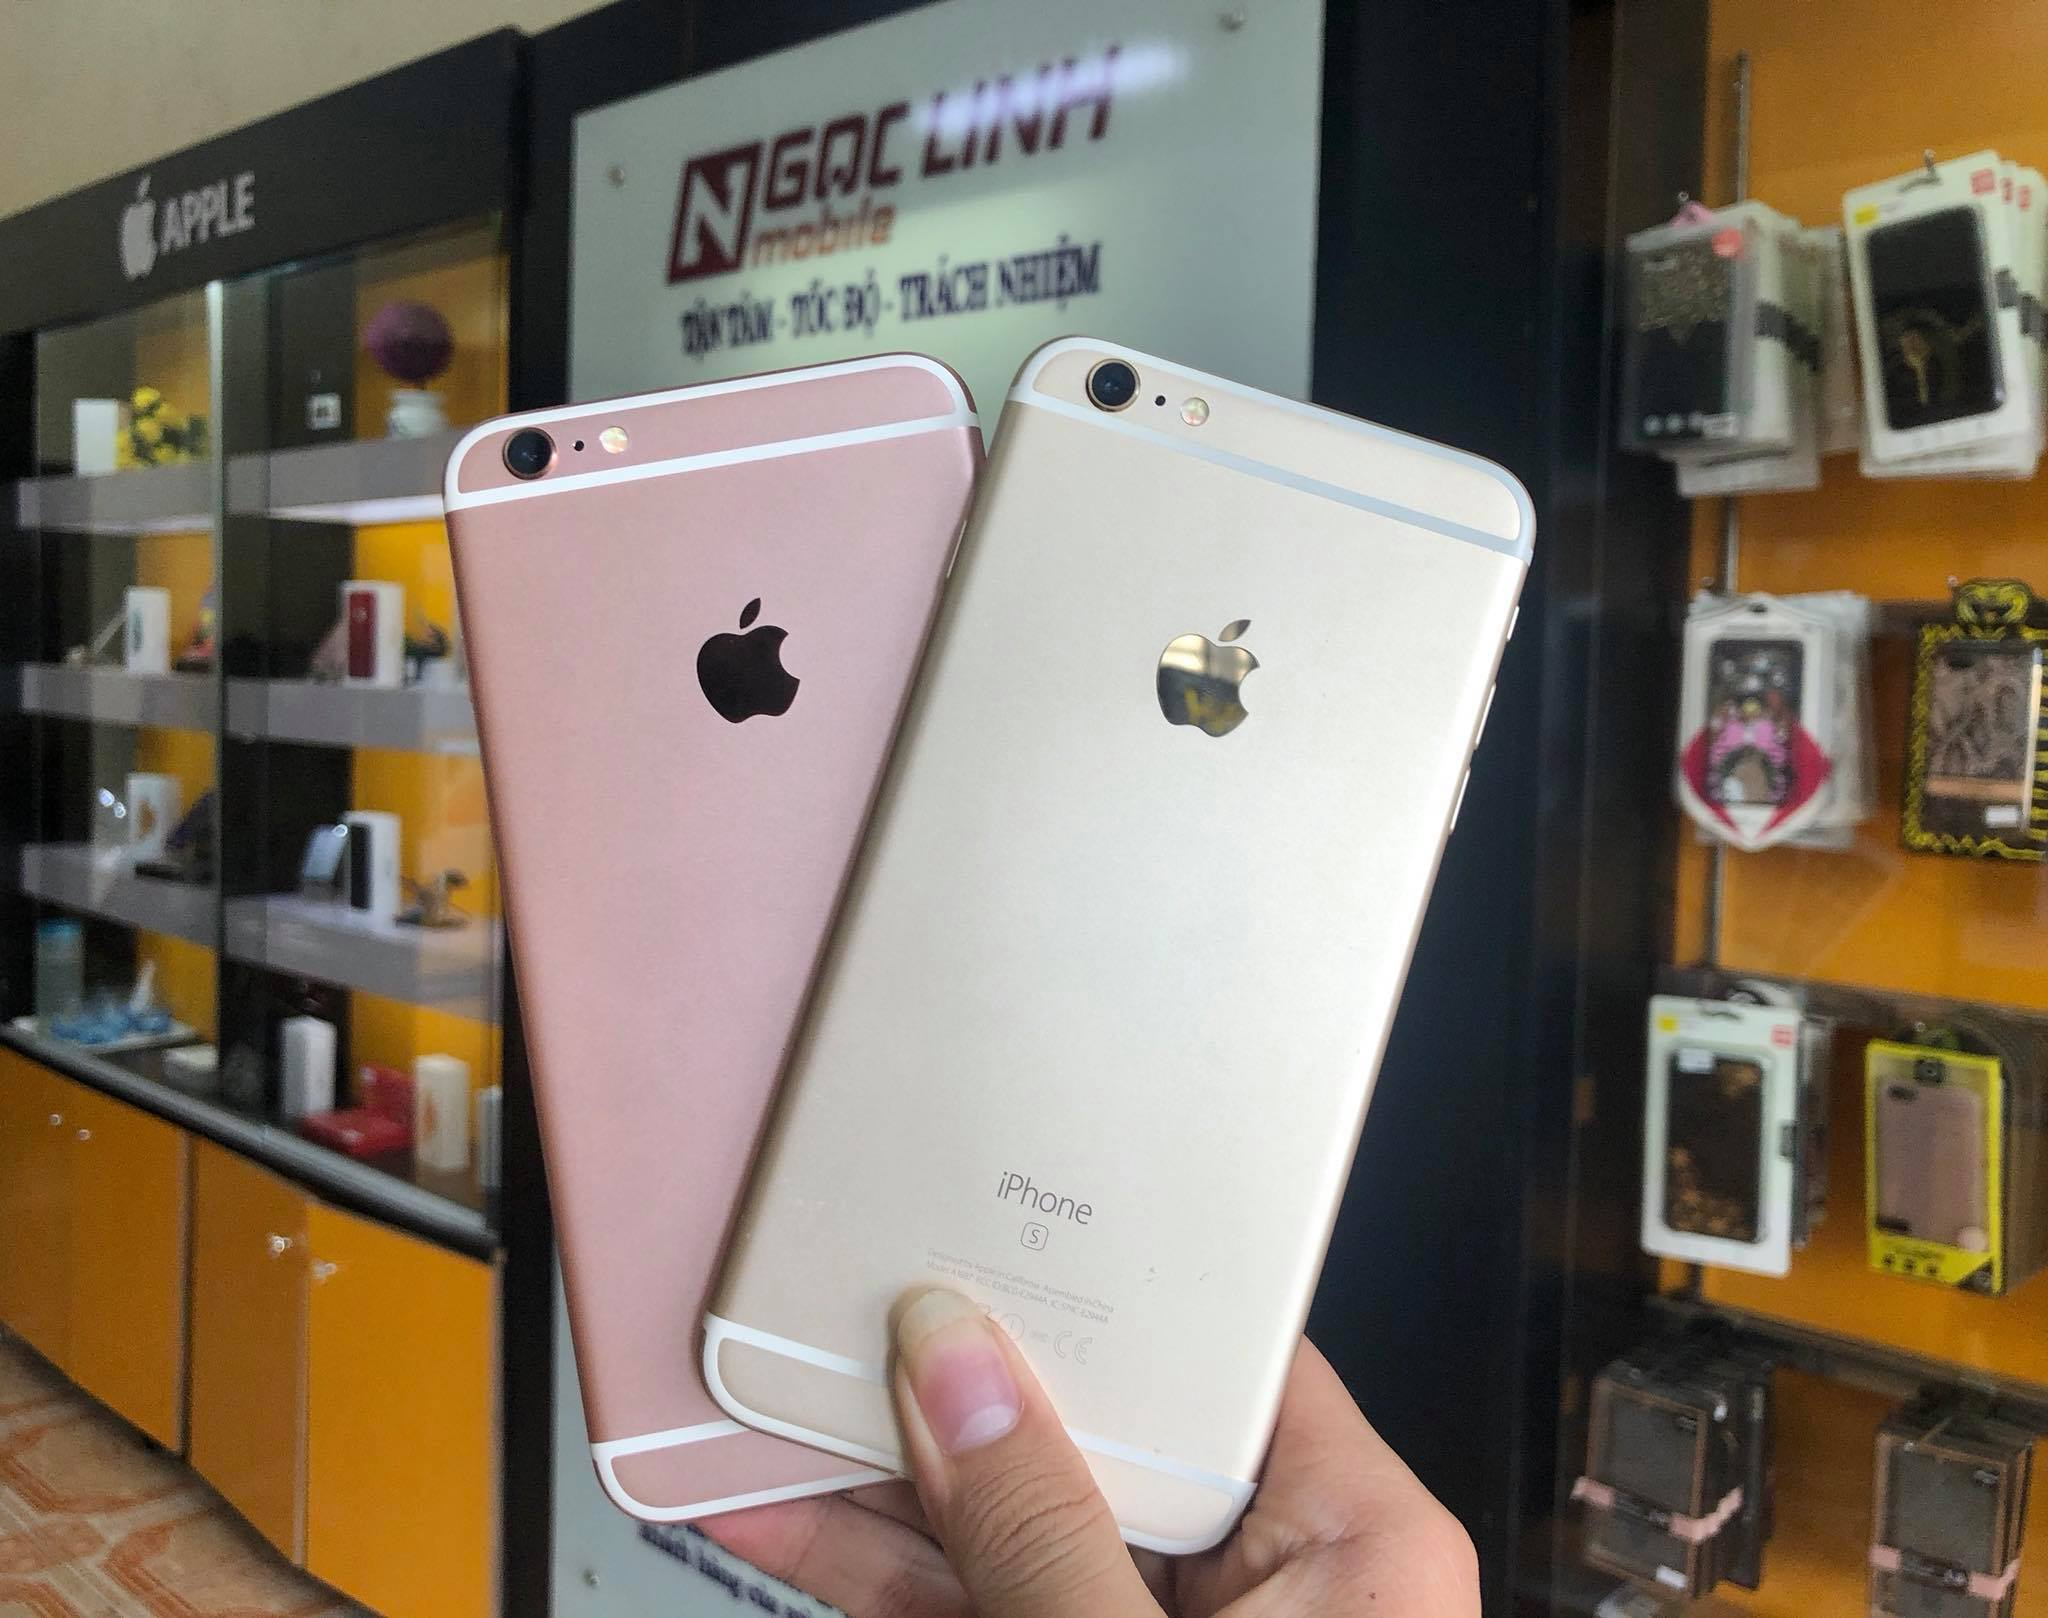 iPhone 6s Plus 16GB, iphone hàng lướt iPhone 6s Plus 16GB - iPhone 6s Plus 16GB